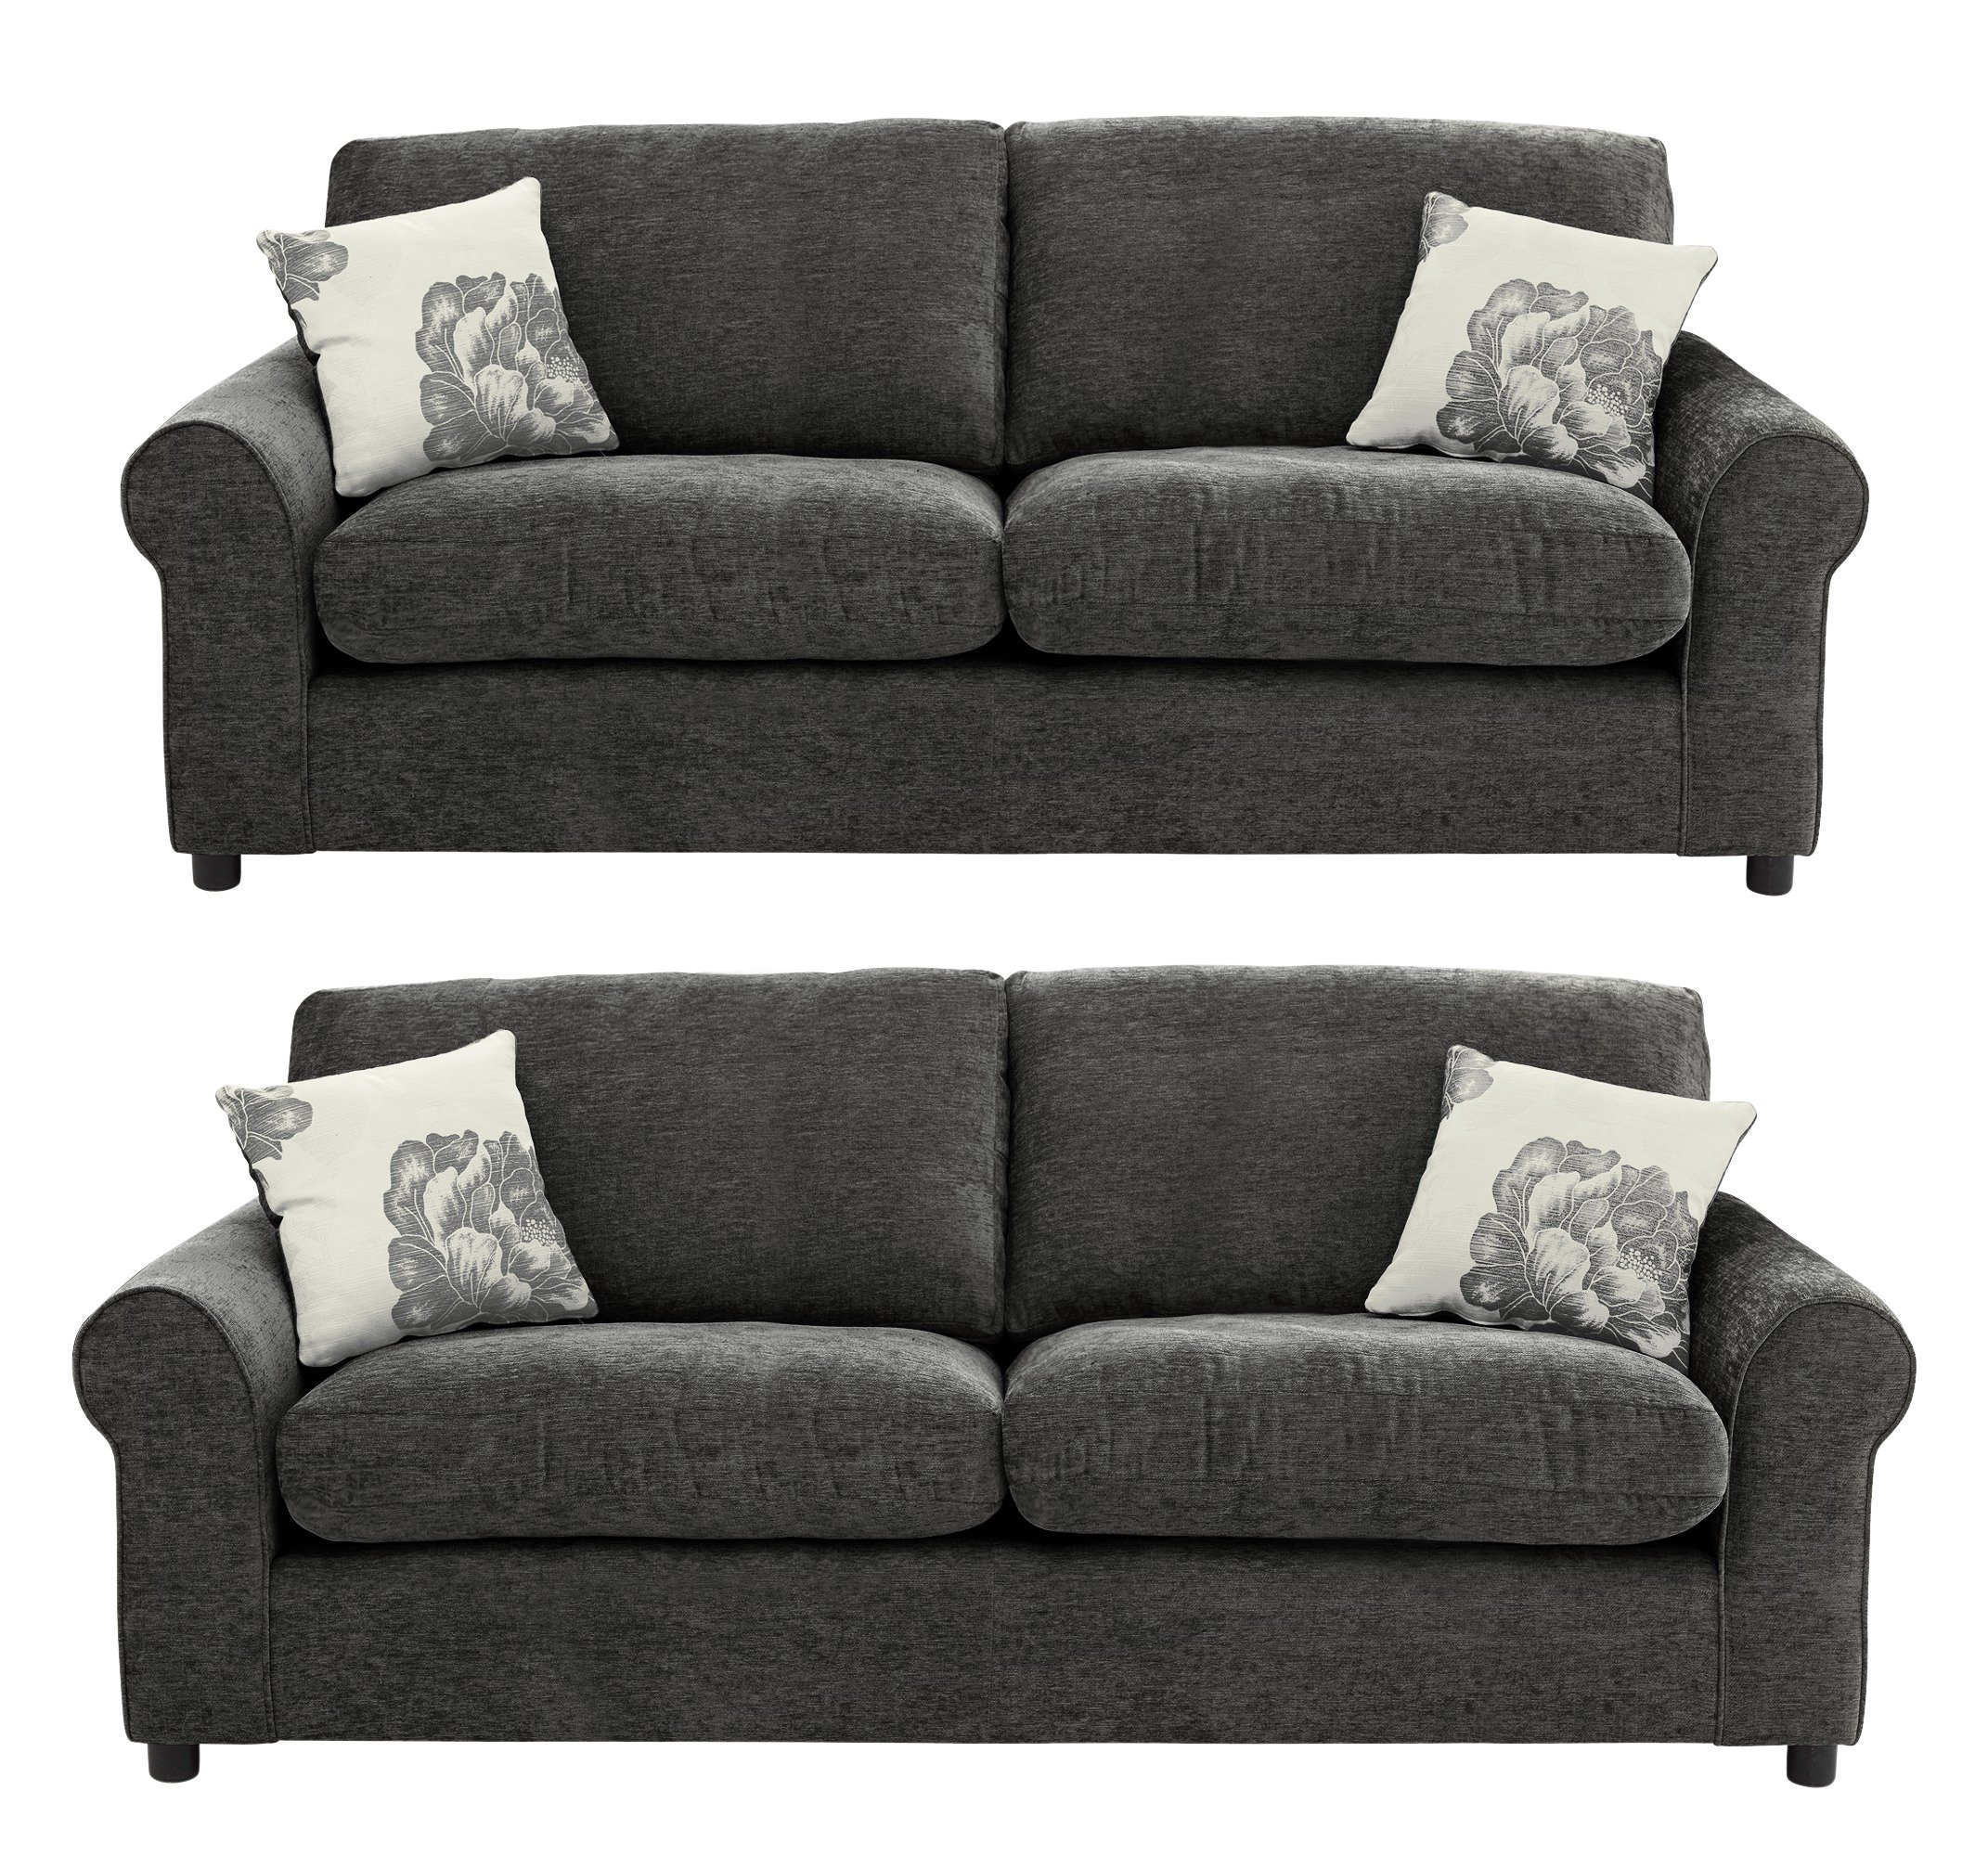 HOME - Tessa Large and Large Fabric - Sofa - Charcoal